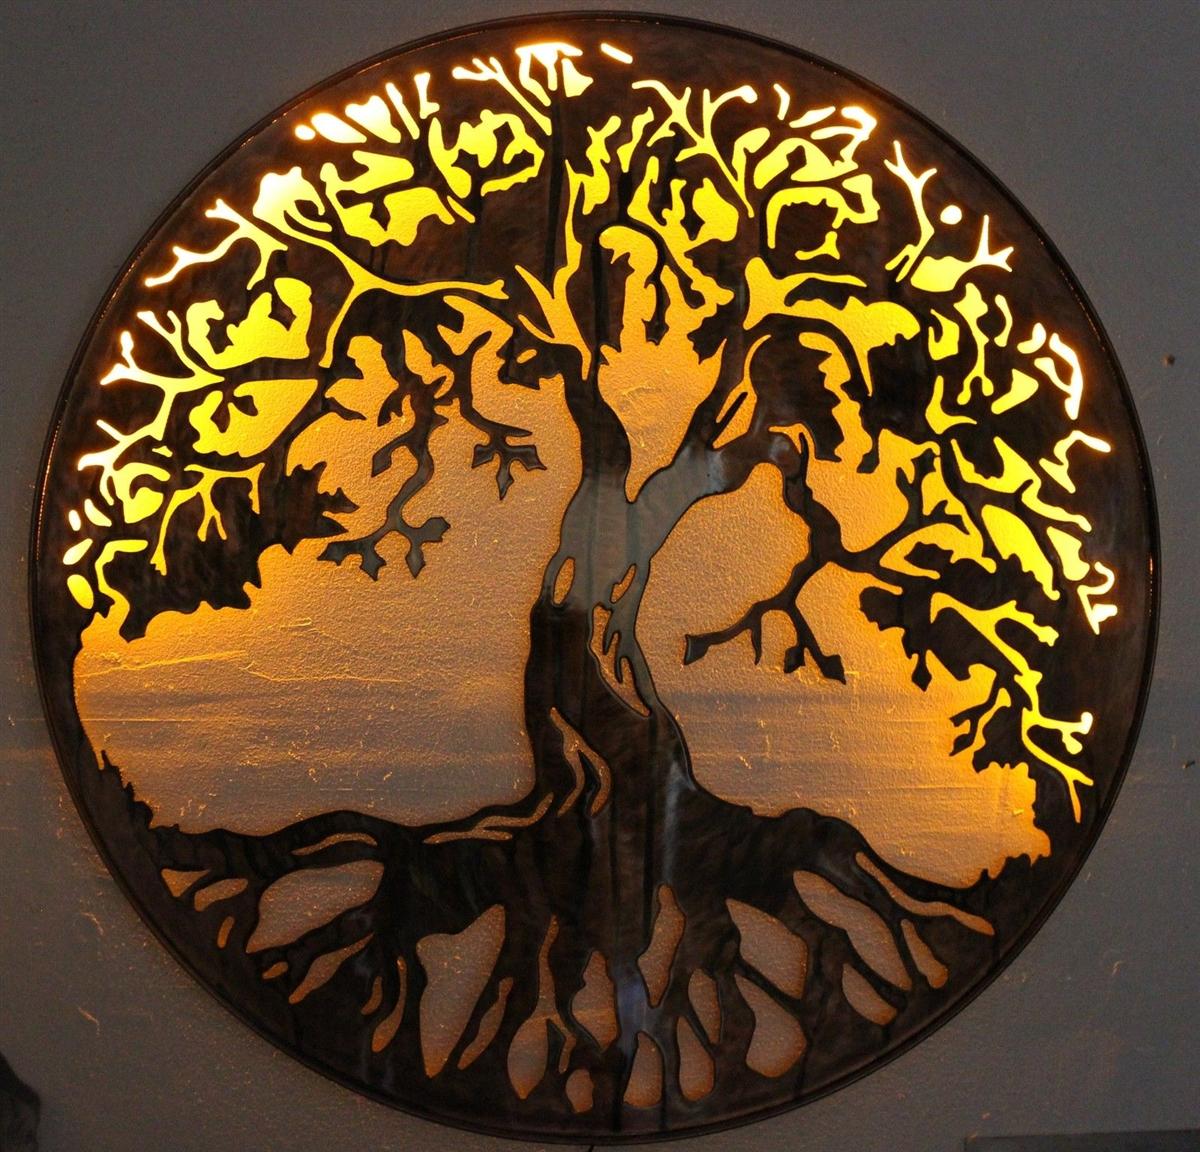 Tree of life metal wall art 24 with led lights by hgmw aloadofball Image collections